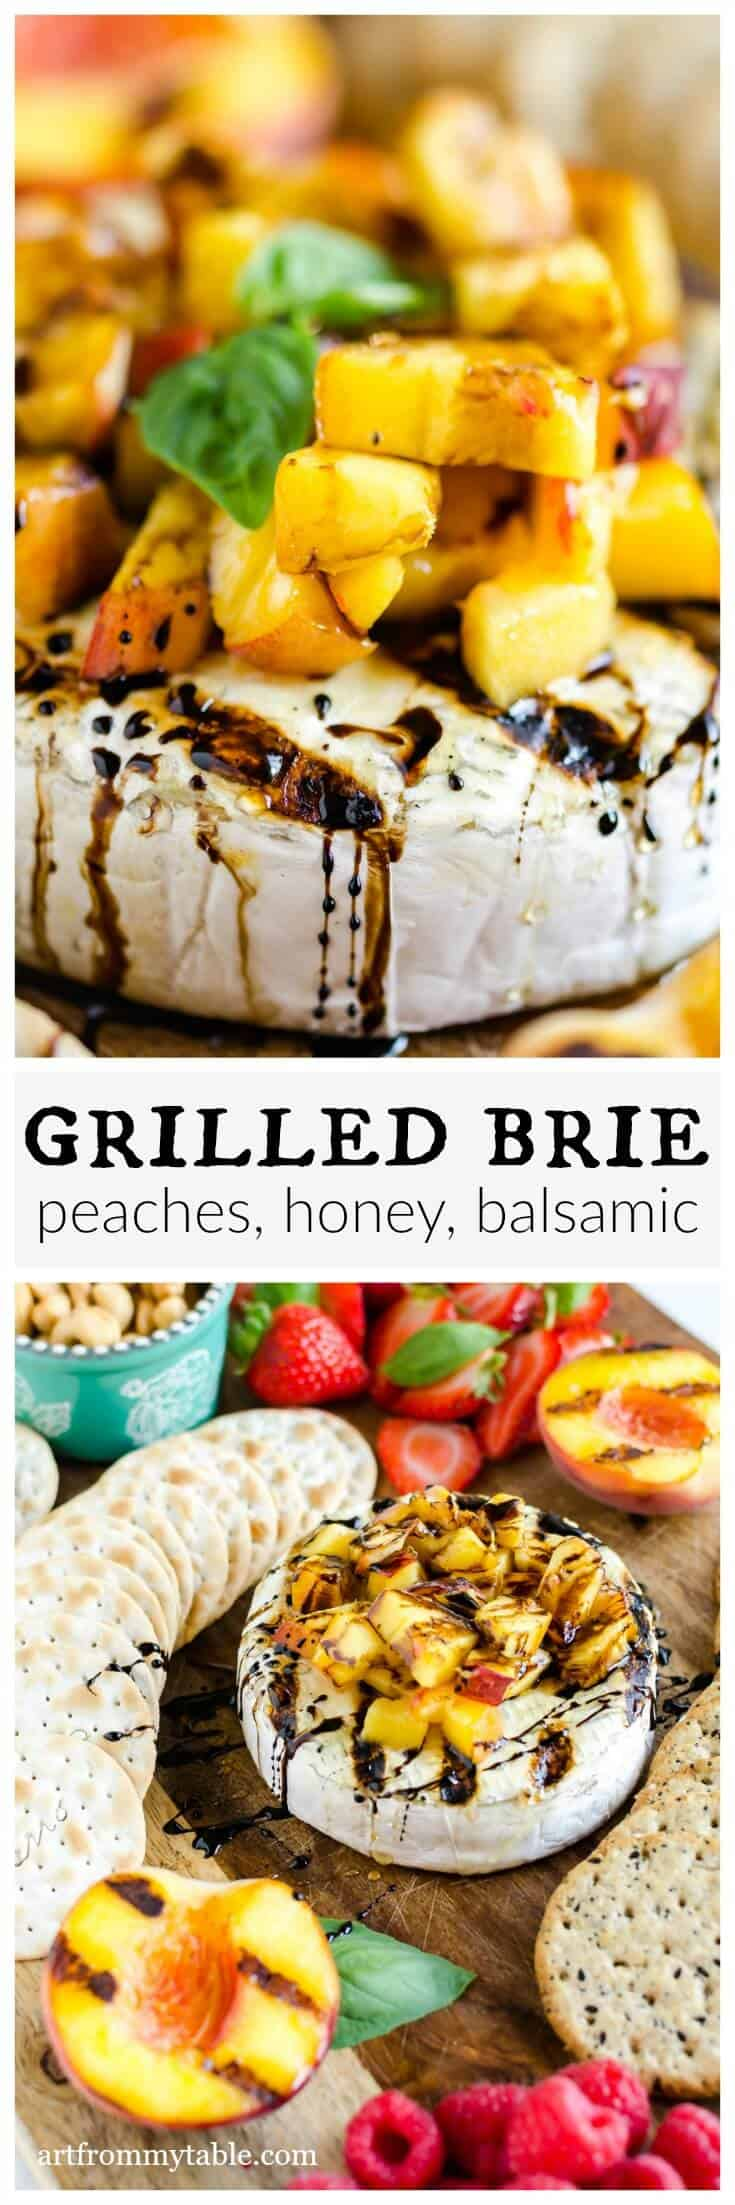 "You need to try this!!! This appetizer brings a whole new meaning to the term ""grilled cheese"". Grilled Brie is warm, oozy, with a hint of that smoky grill flavor. Read on to learn how to grill brie. #grilledcheese #grilling #cheese #appetizer #peaches #grilledbriewheel via @artfrommytable"